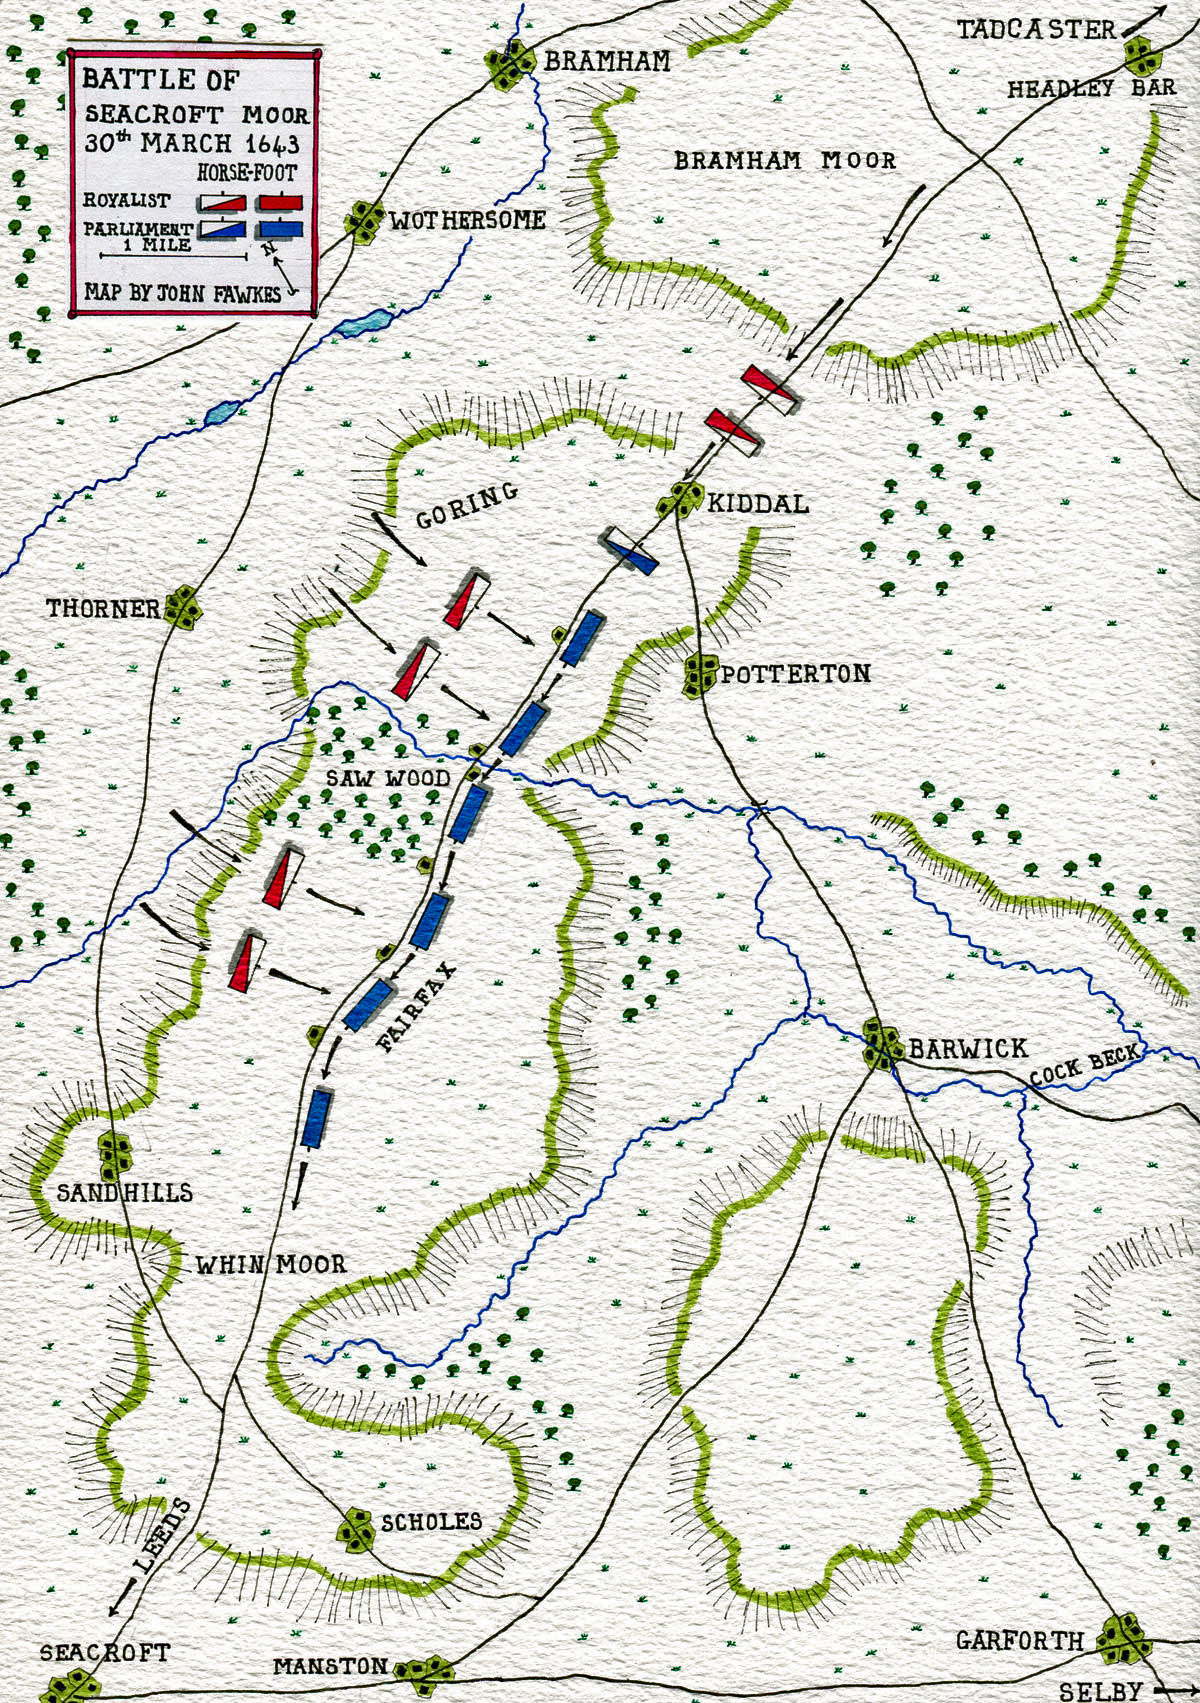 Map of the Battle of Seacroft Moor 30th March 1643 in the English Civil War: map by John Fawkes